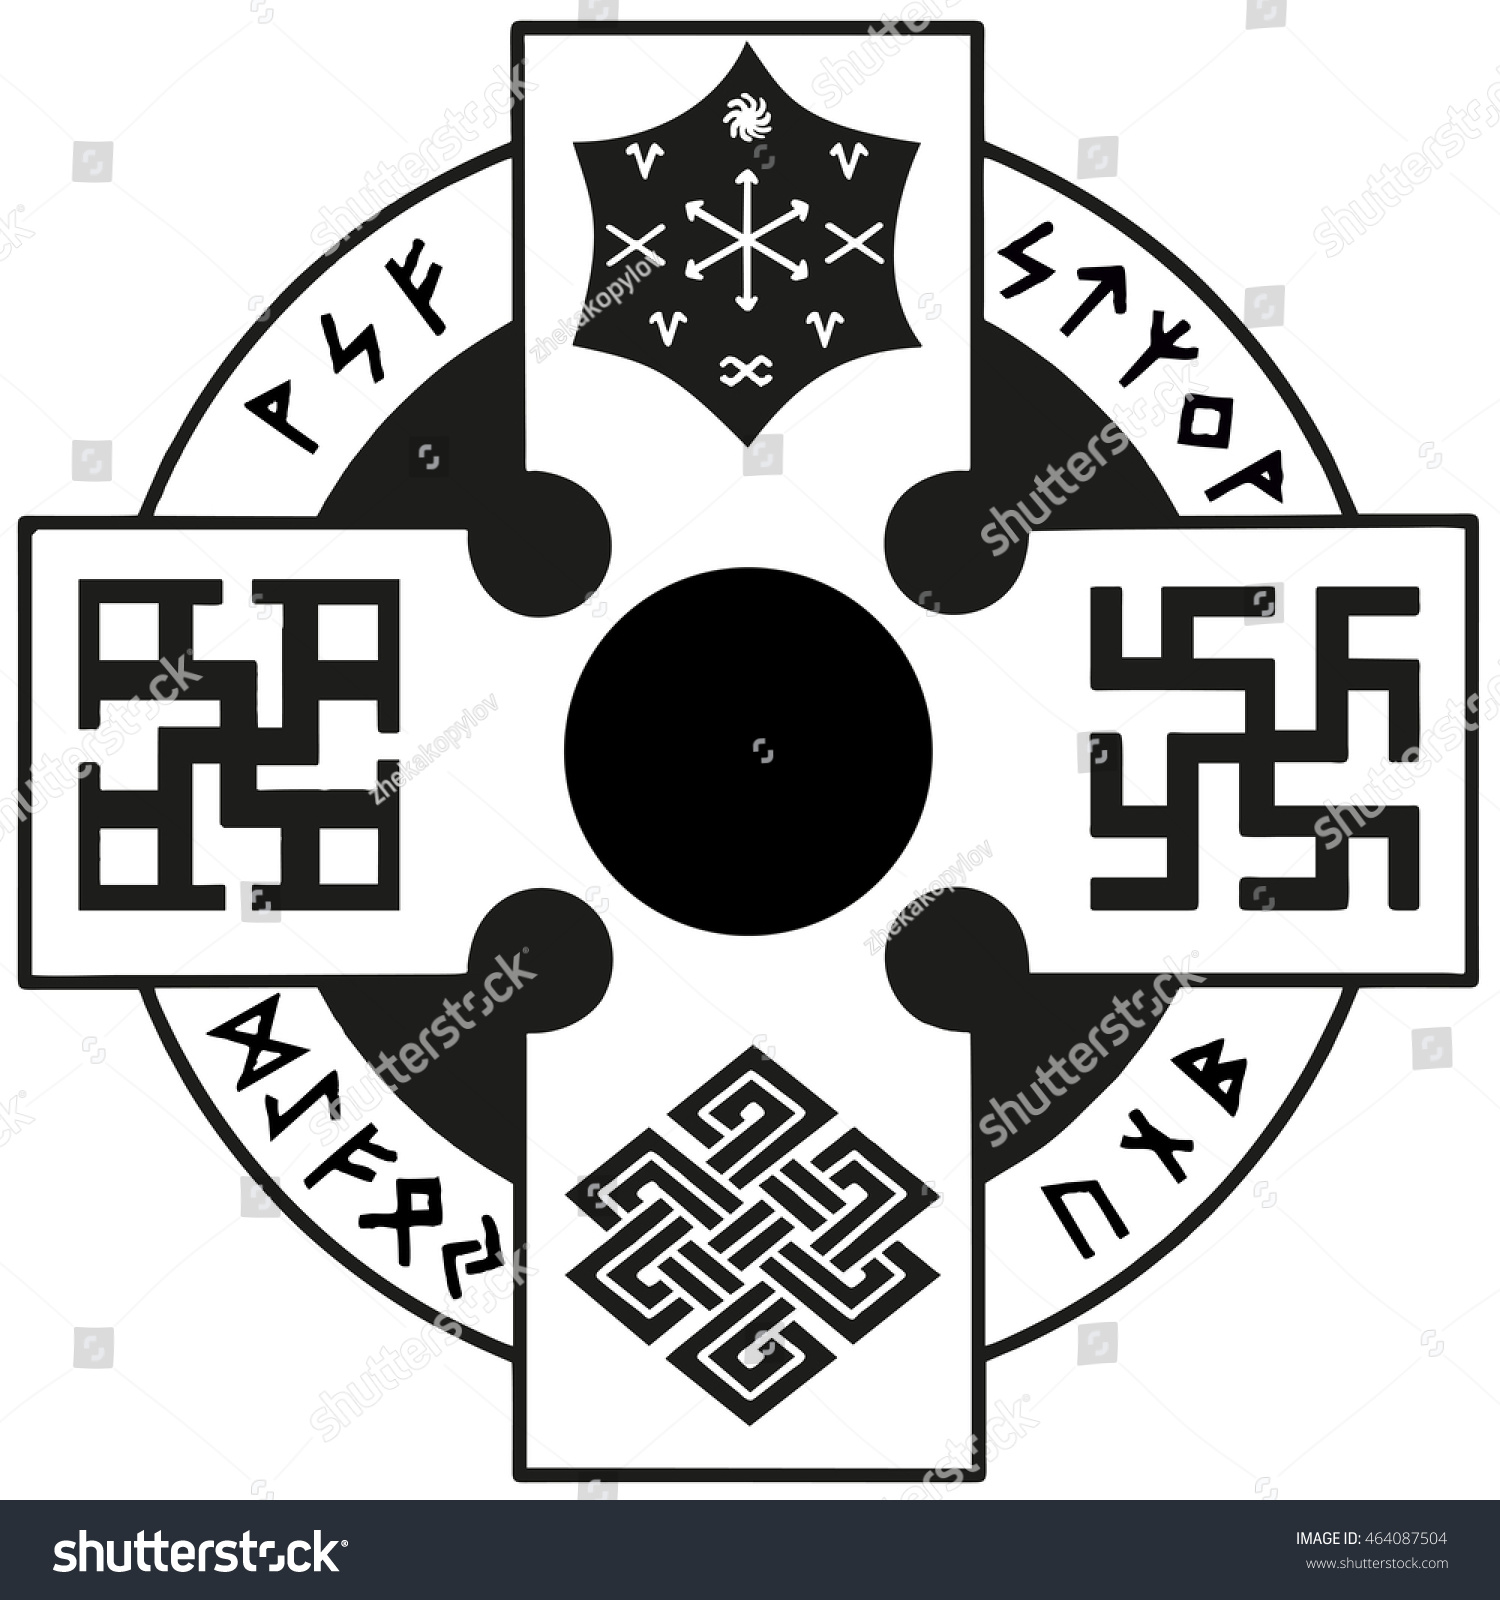 Slavic amulet runes carries sacred meaning stock vector 464087504 slavic amulet with runes carries a sacred meaning pointing to the spiritual development of the biocorpaavc Gallery